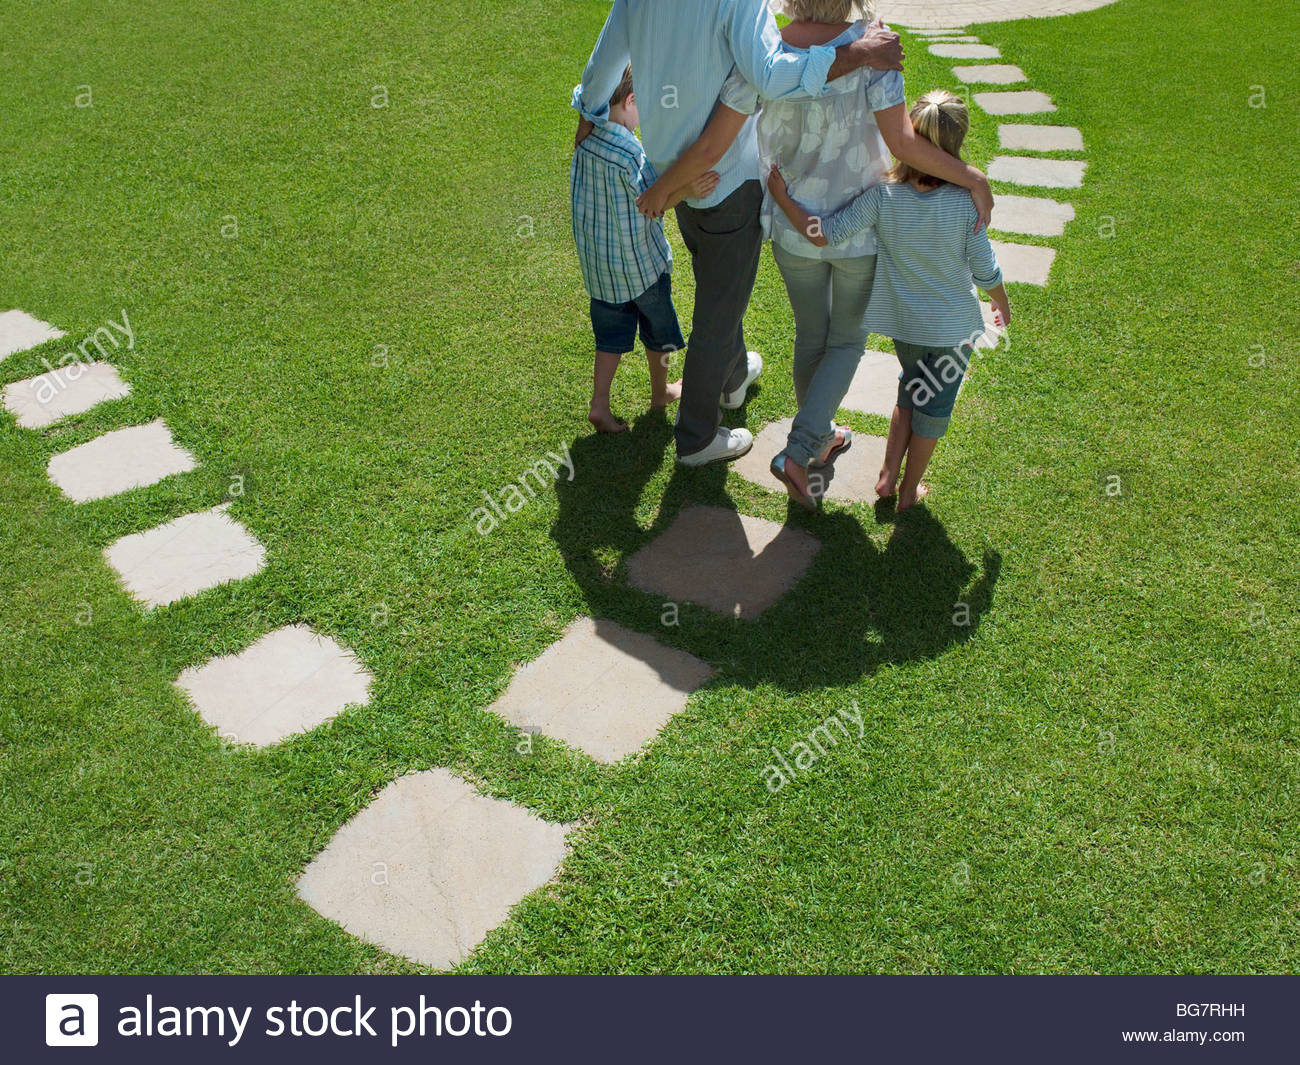 Family walking on stones in grass - Stock Image